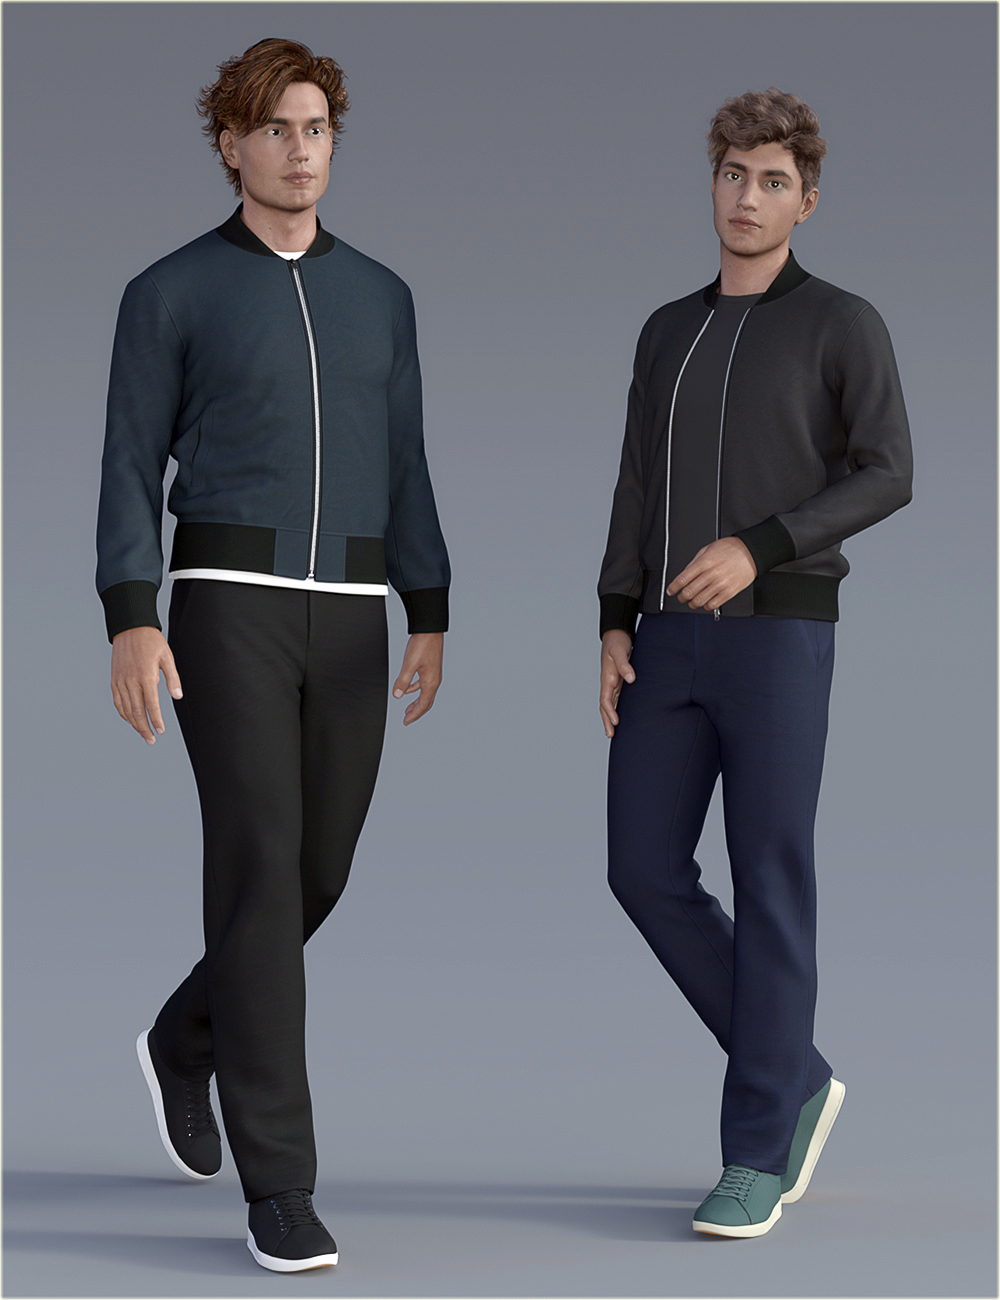 H&C dForce Basic Jacket Outfit for Genesis 8 Male(s) by: IH Kang, 3D Models by Daz 3D